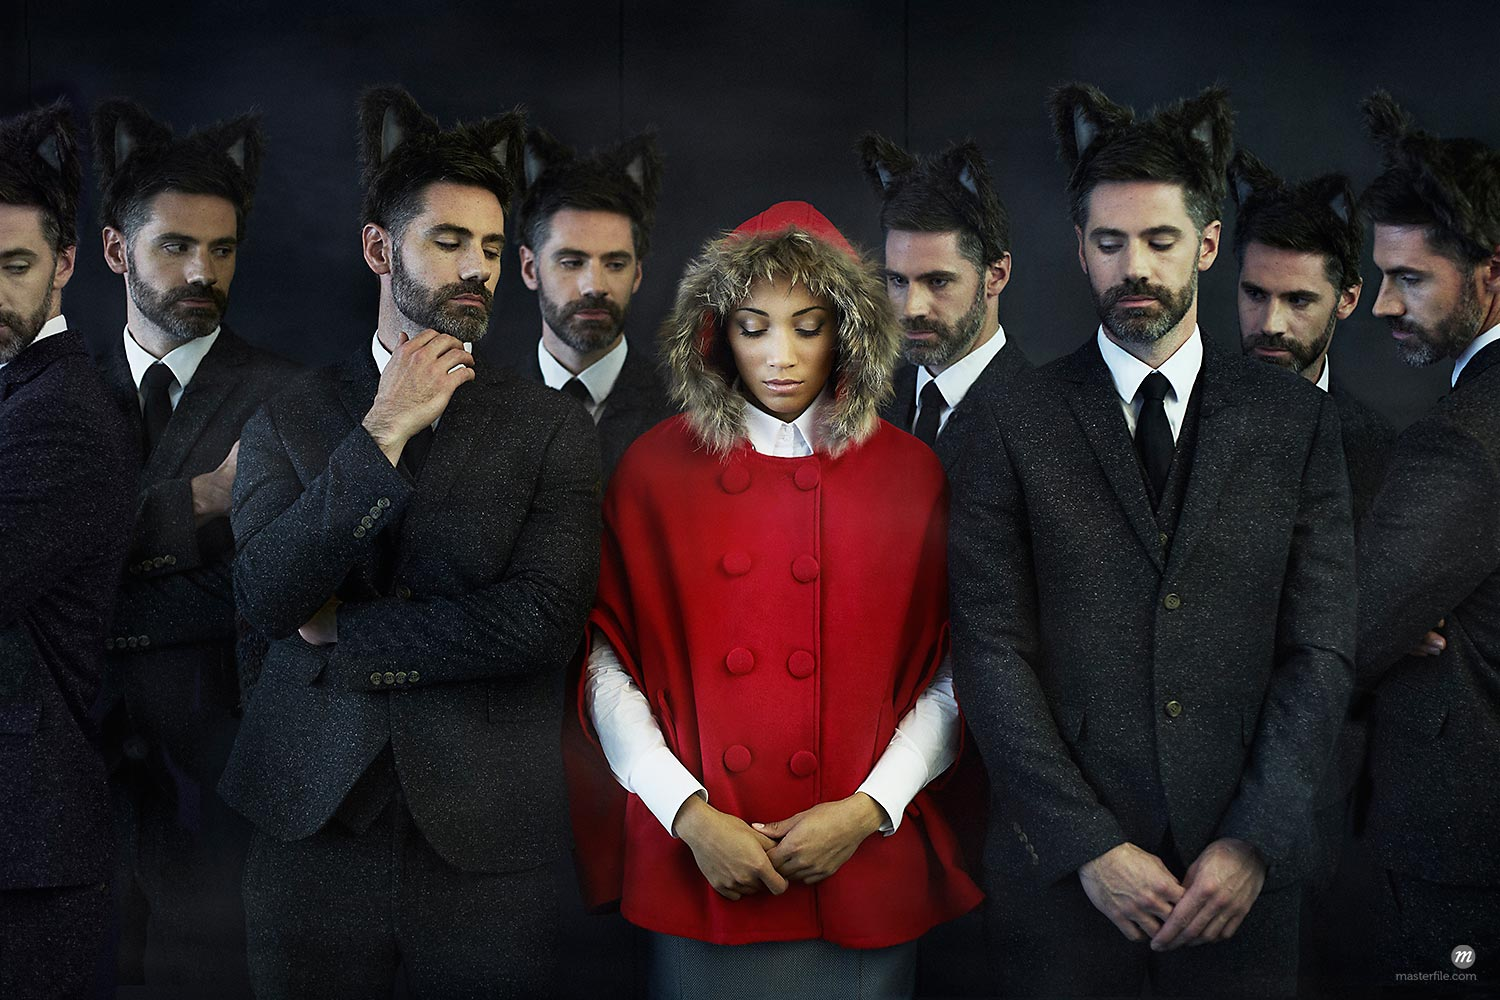 Woman dressed as little red riding hood with businessmen, multiple image  © Masterfile